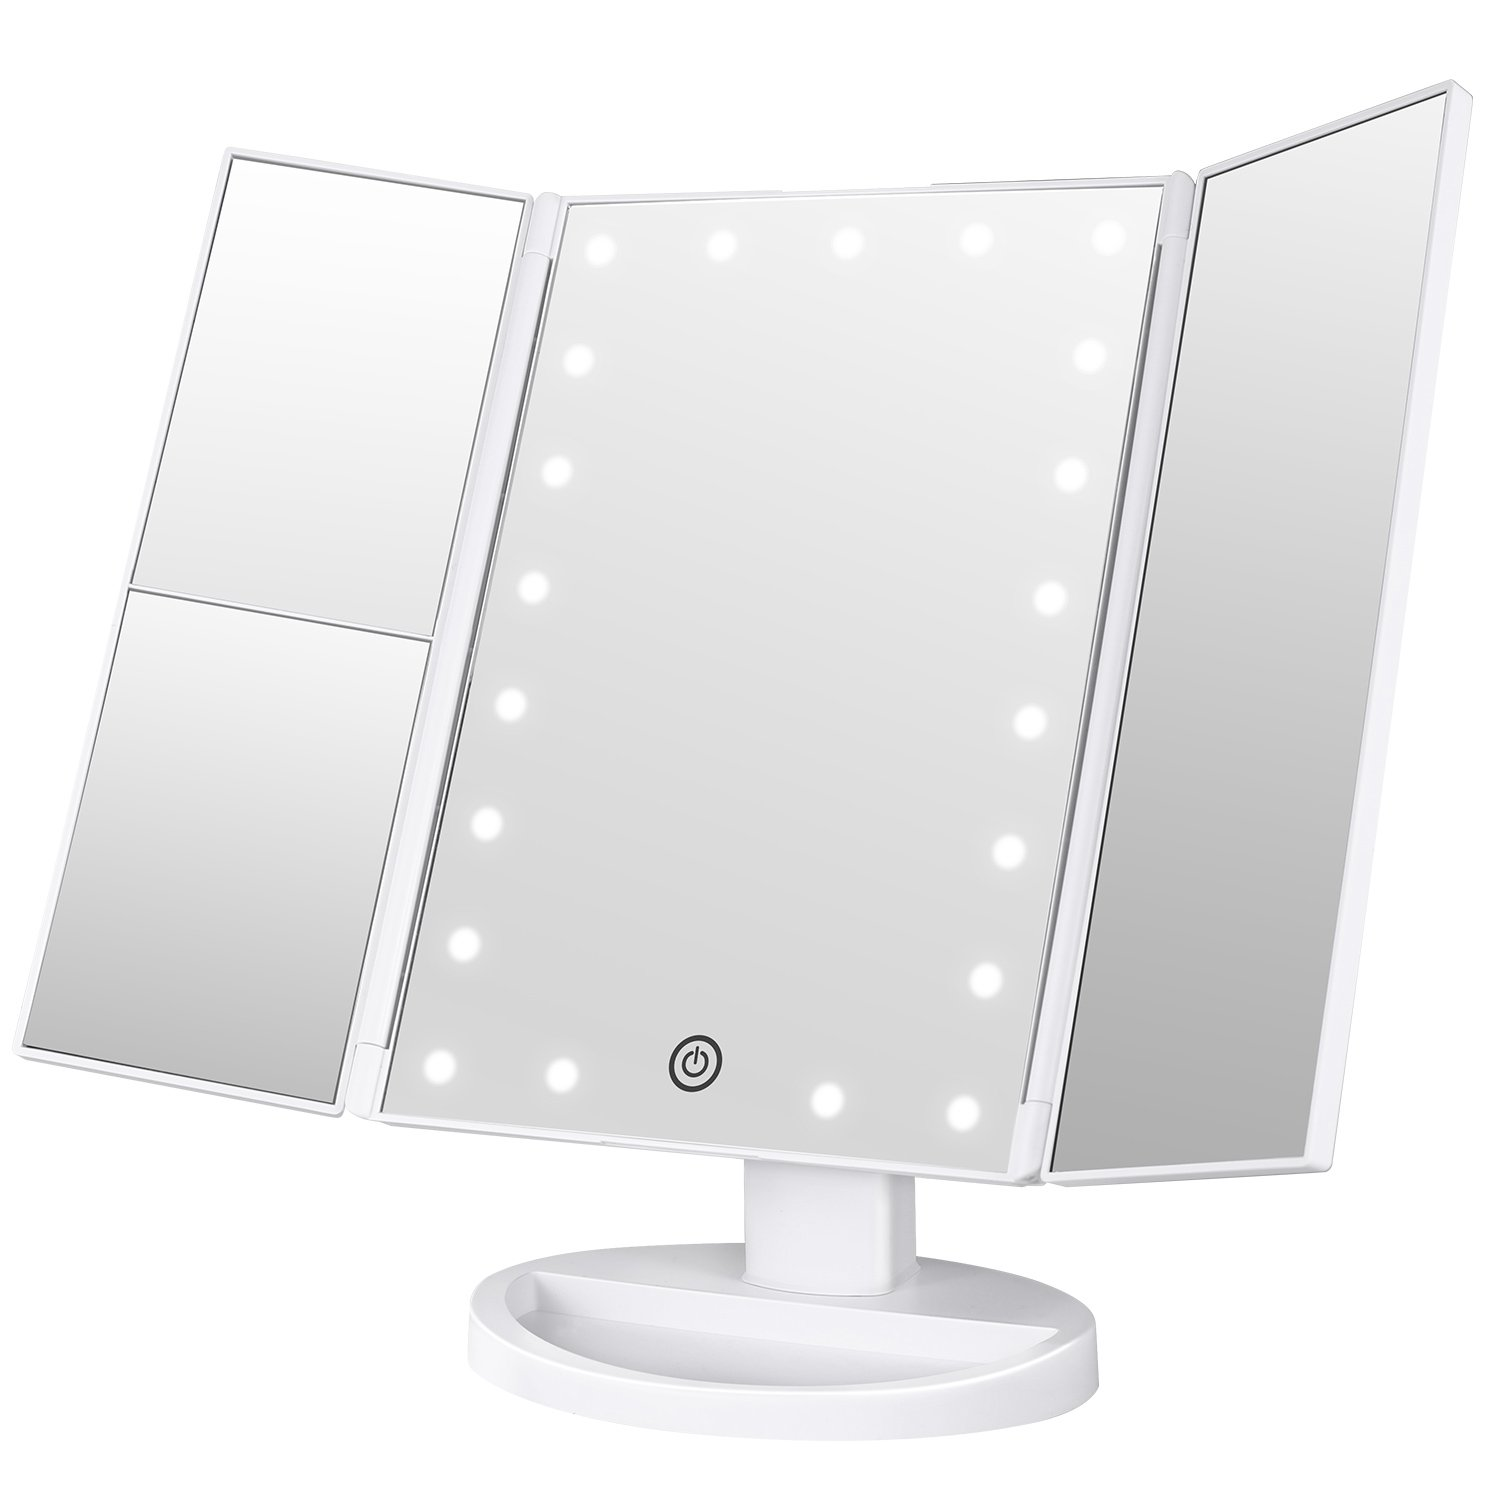 BESTOPE Makeup Vanity Mirror with 21 Led Lights,3x/2x Magnification Led Makeup Mirror with Touch Screen,Dual Power Supply, 180° Adjustable Rotation,Countertop Cosmetic Mirror (White-1)